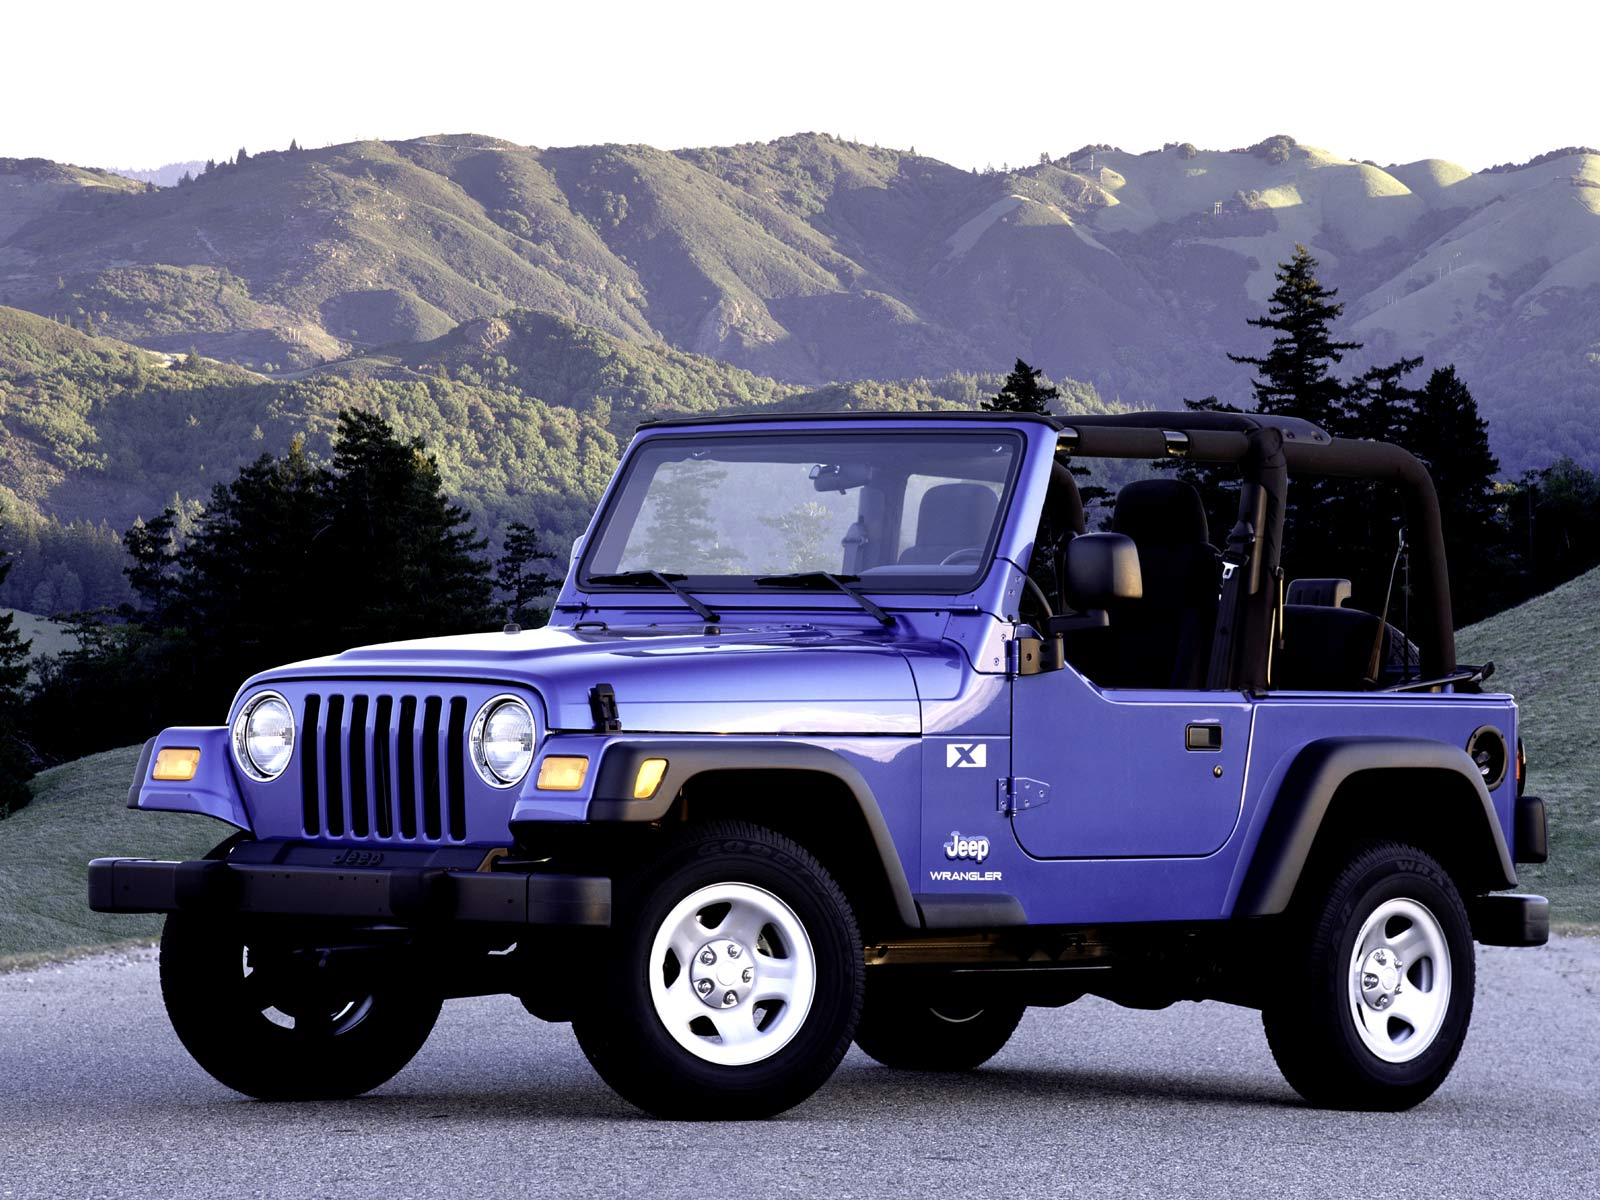 File Size: 266940 Bytes. Dimensions: 1600 X 1200 Pixels. JEEP Desktop  Backgrounds Of Cars , HD Car Wallpapers , Car Wallpaper HD